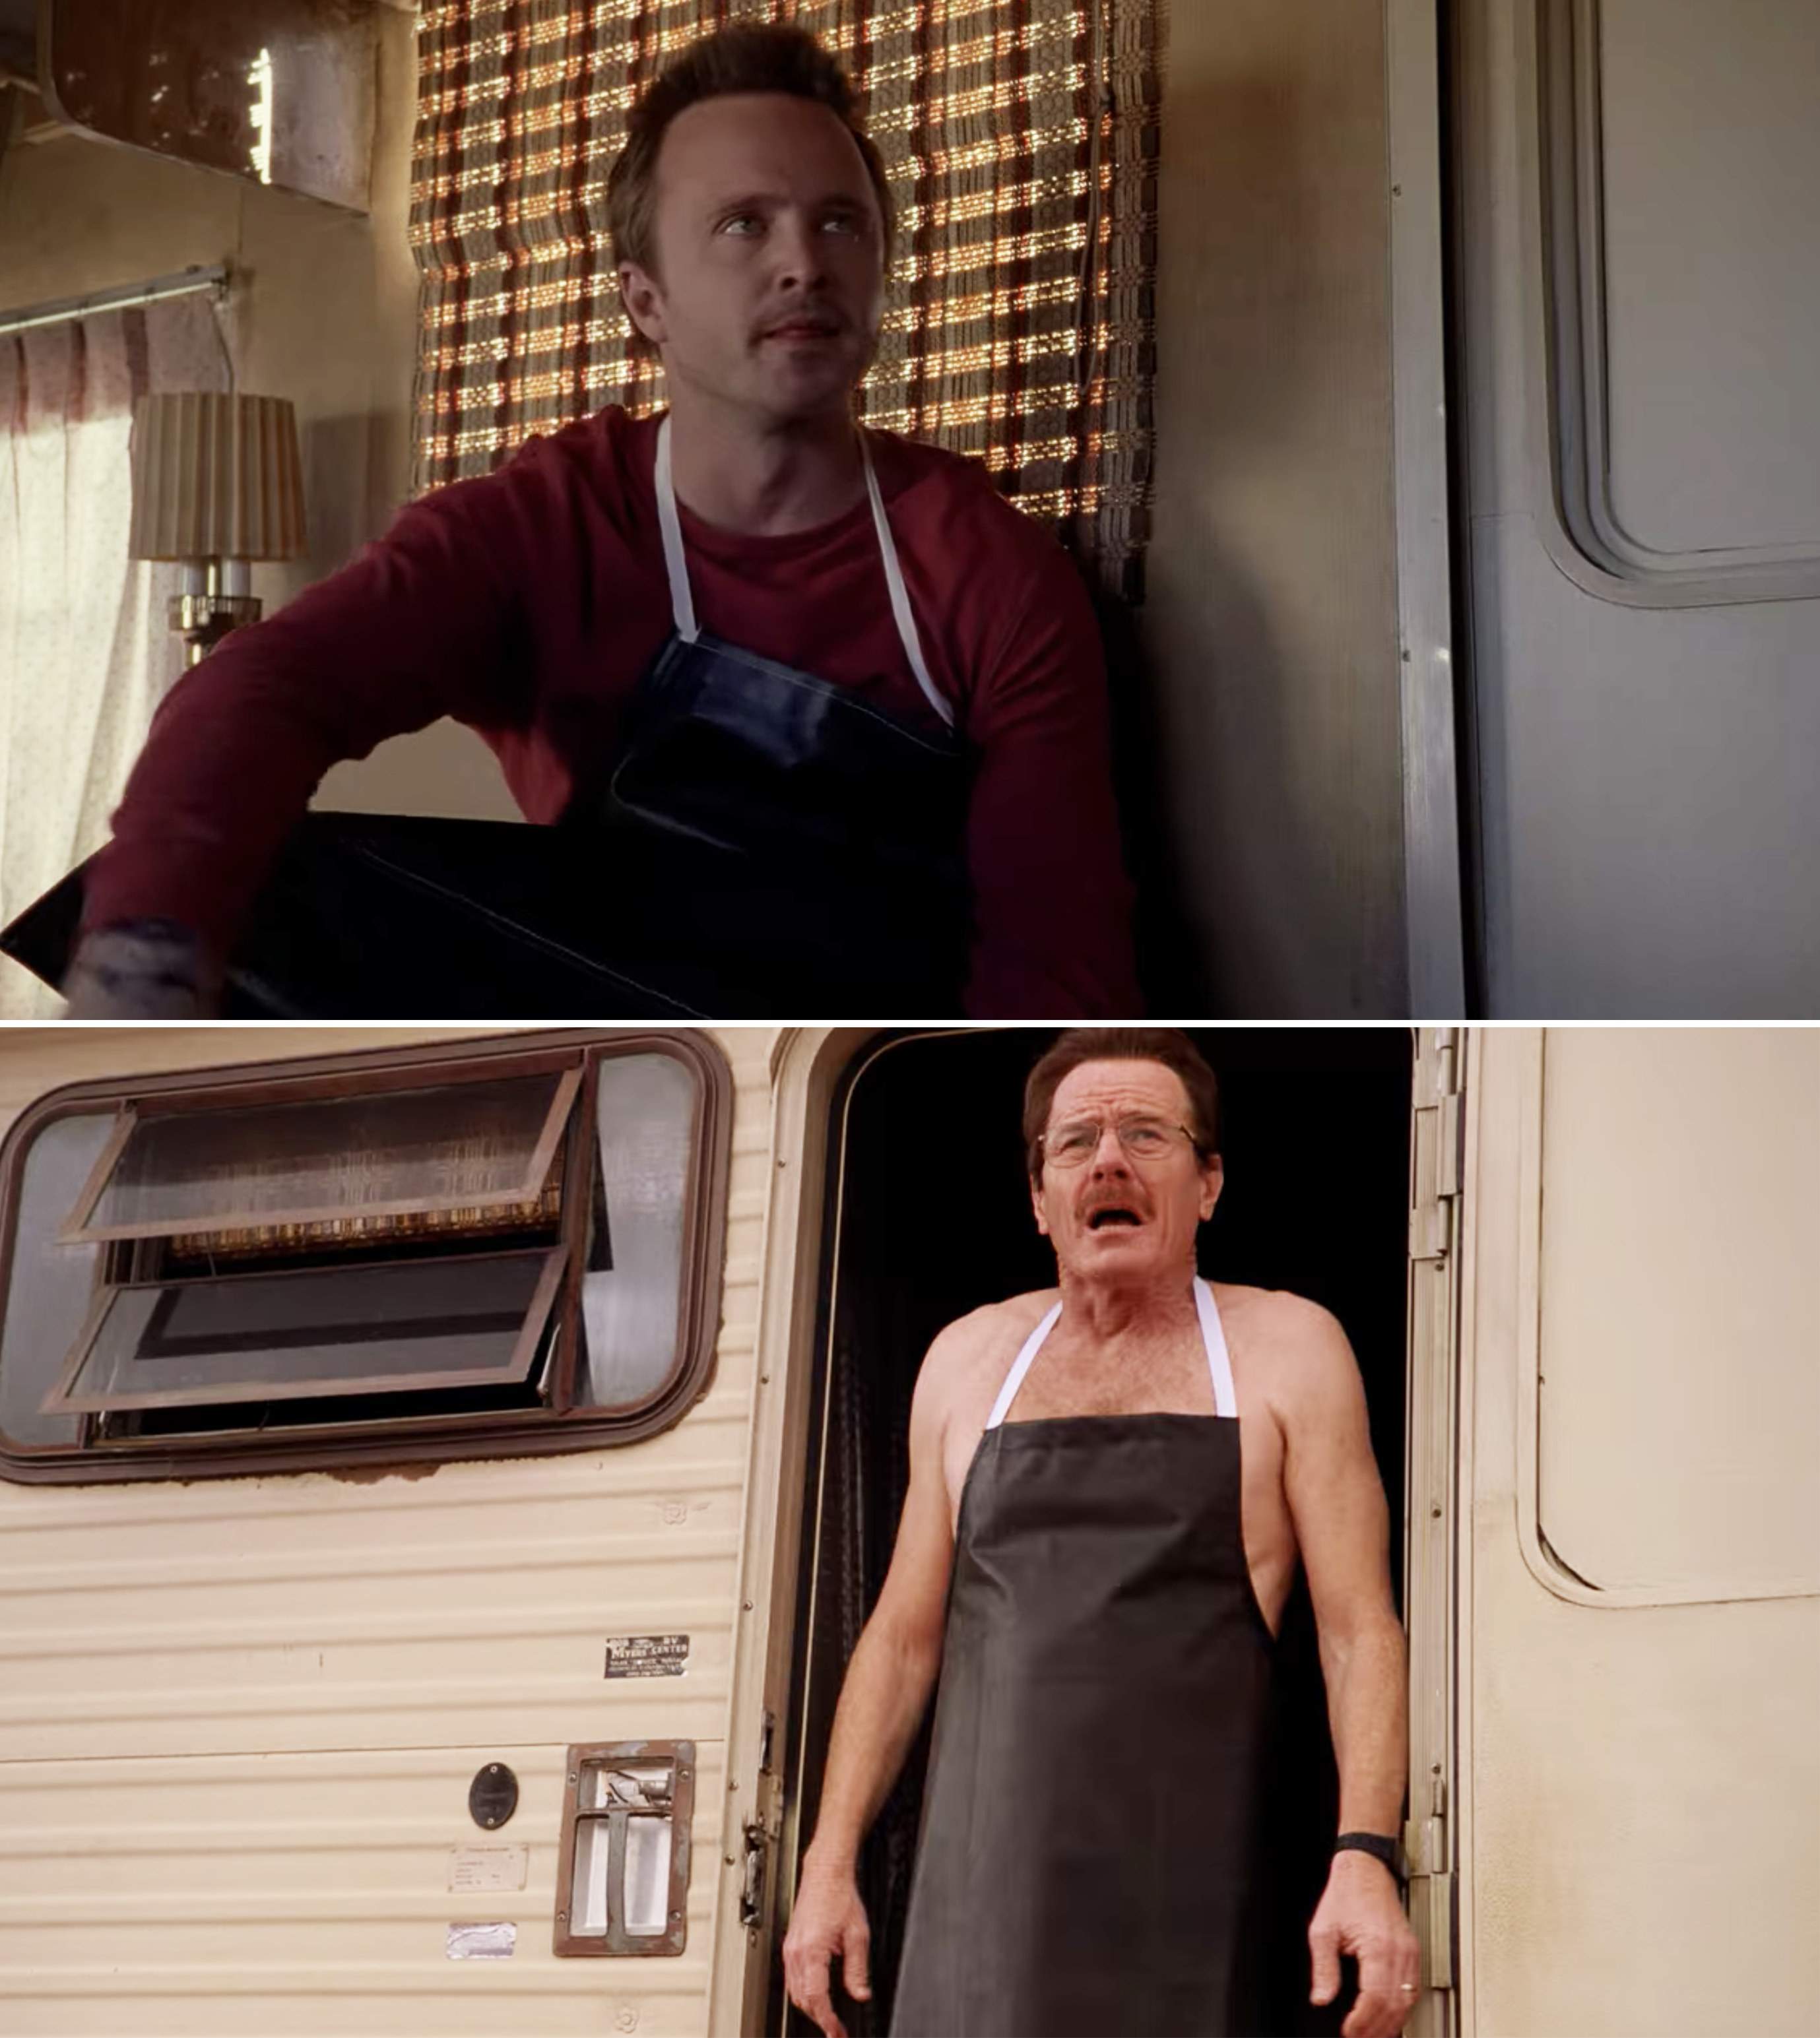 Jesse and Walt cooking in the RV